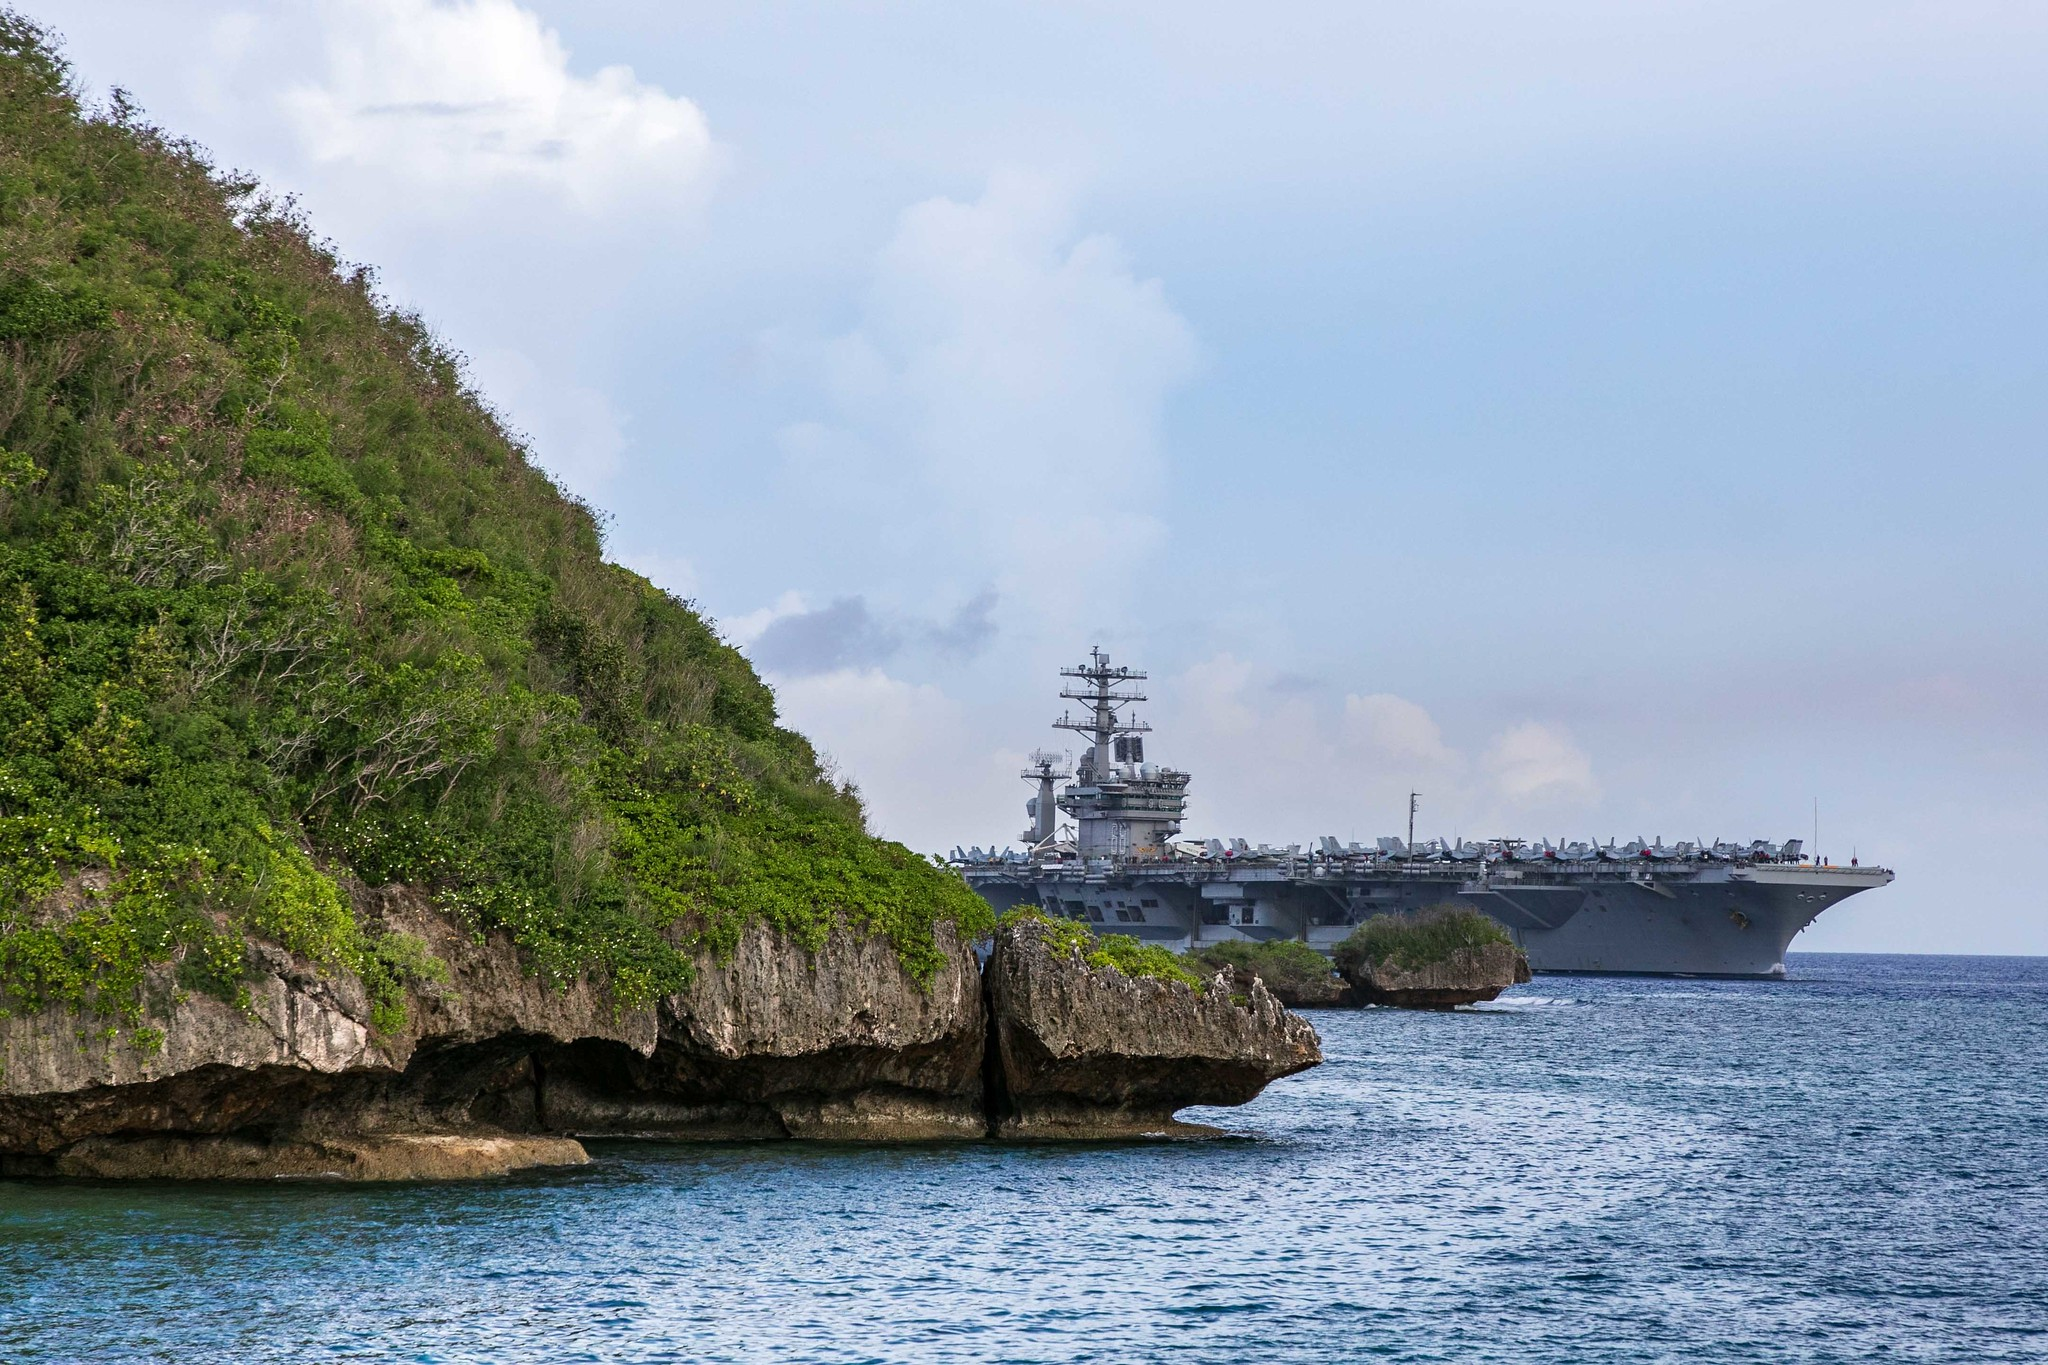 The aircraft carrier USS Nimitz (CVN 68) passes Point Udall as it enters Apra Harbor on June 24, 2020, prior to mooring at Naval Base Guam for a scheduled port visit. (Chief Mass Communication Specialist Matthew R. White/Navy)